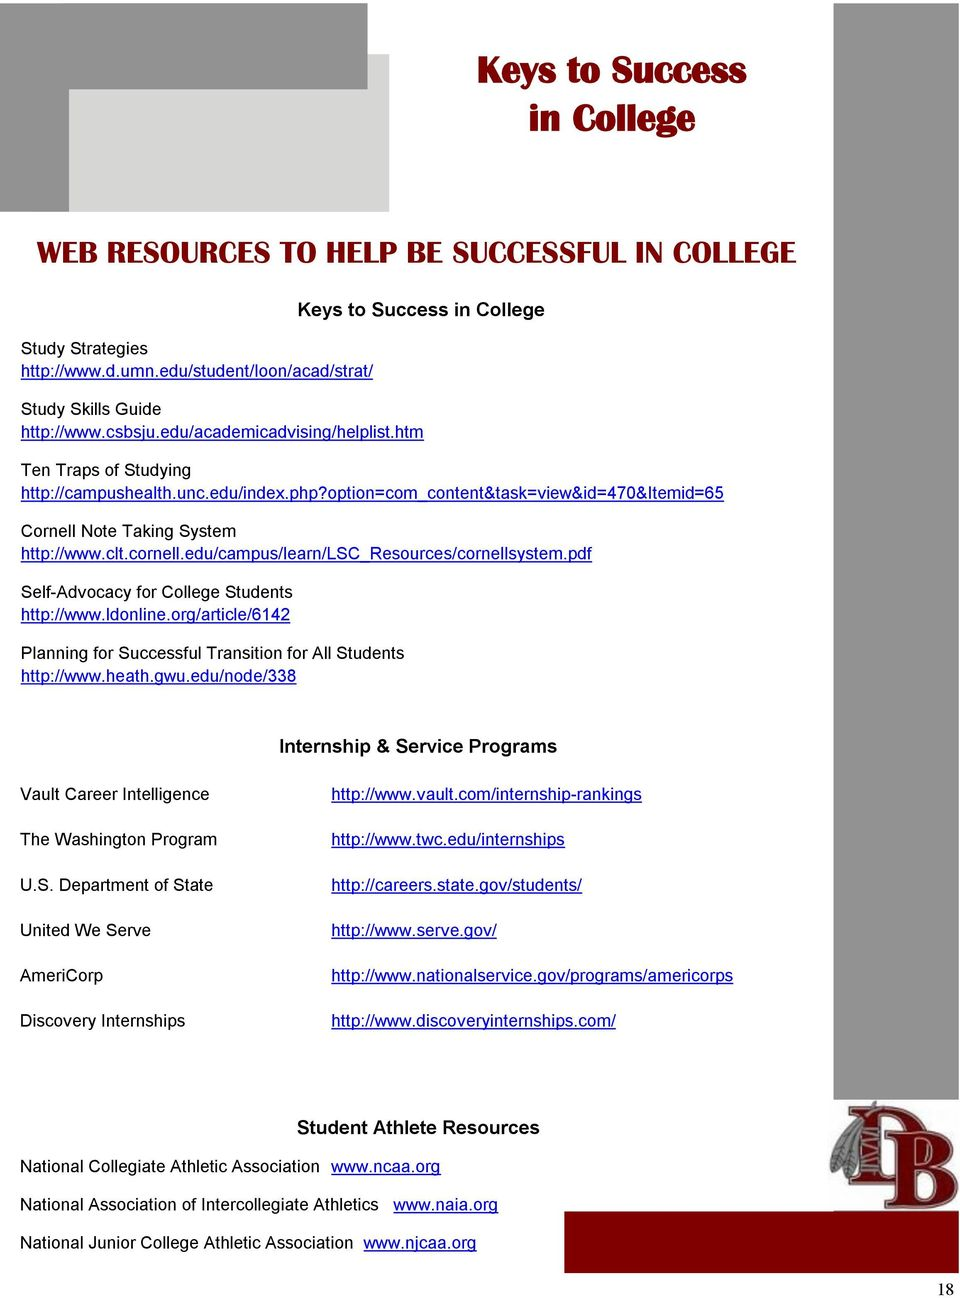 edu/campus/learn/lsc_resources/cornellsystem.pdf Self-Advocacy for College Students http://www.ldonline.org/article/6142 Planning for Successful Transition for All Students http://www.heath.gwu.